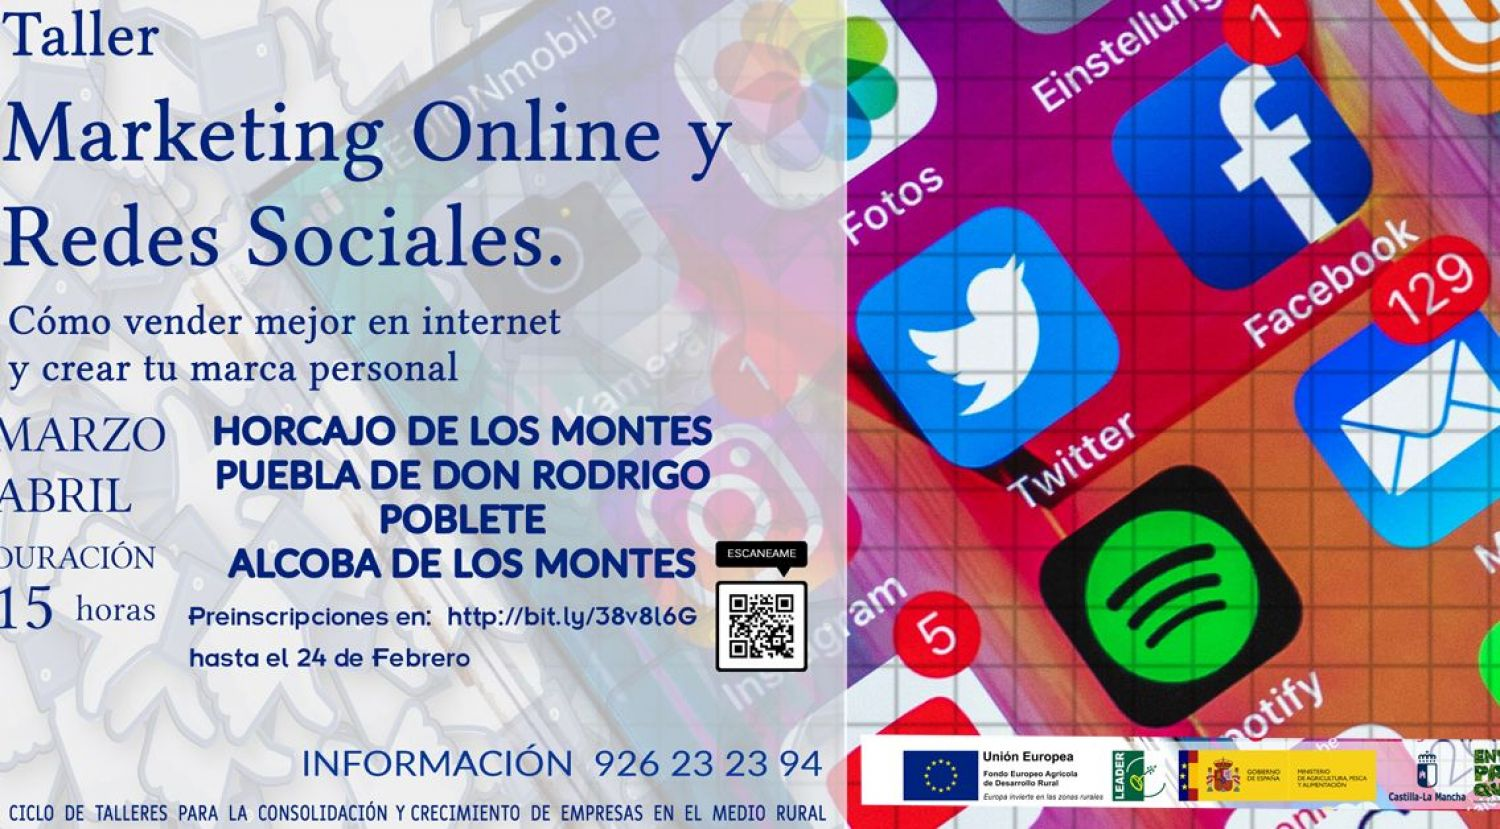 Curso de Marketing online y redes sociales